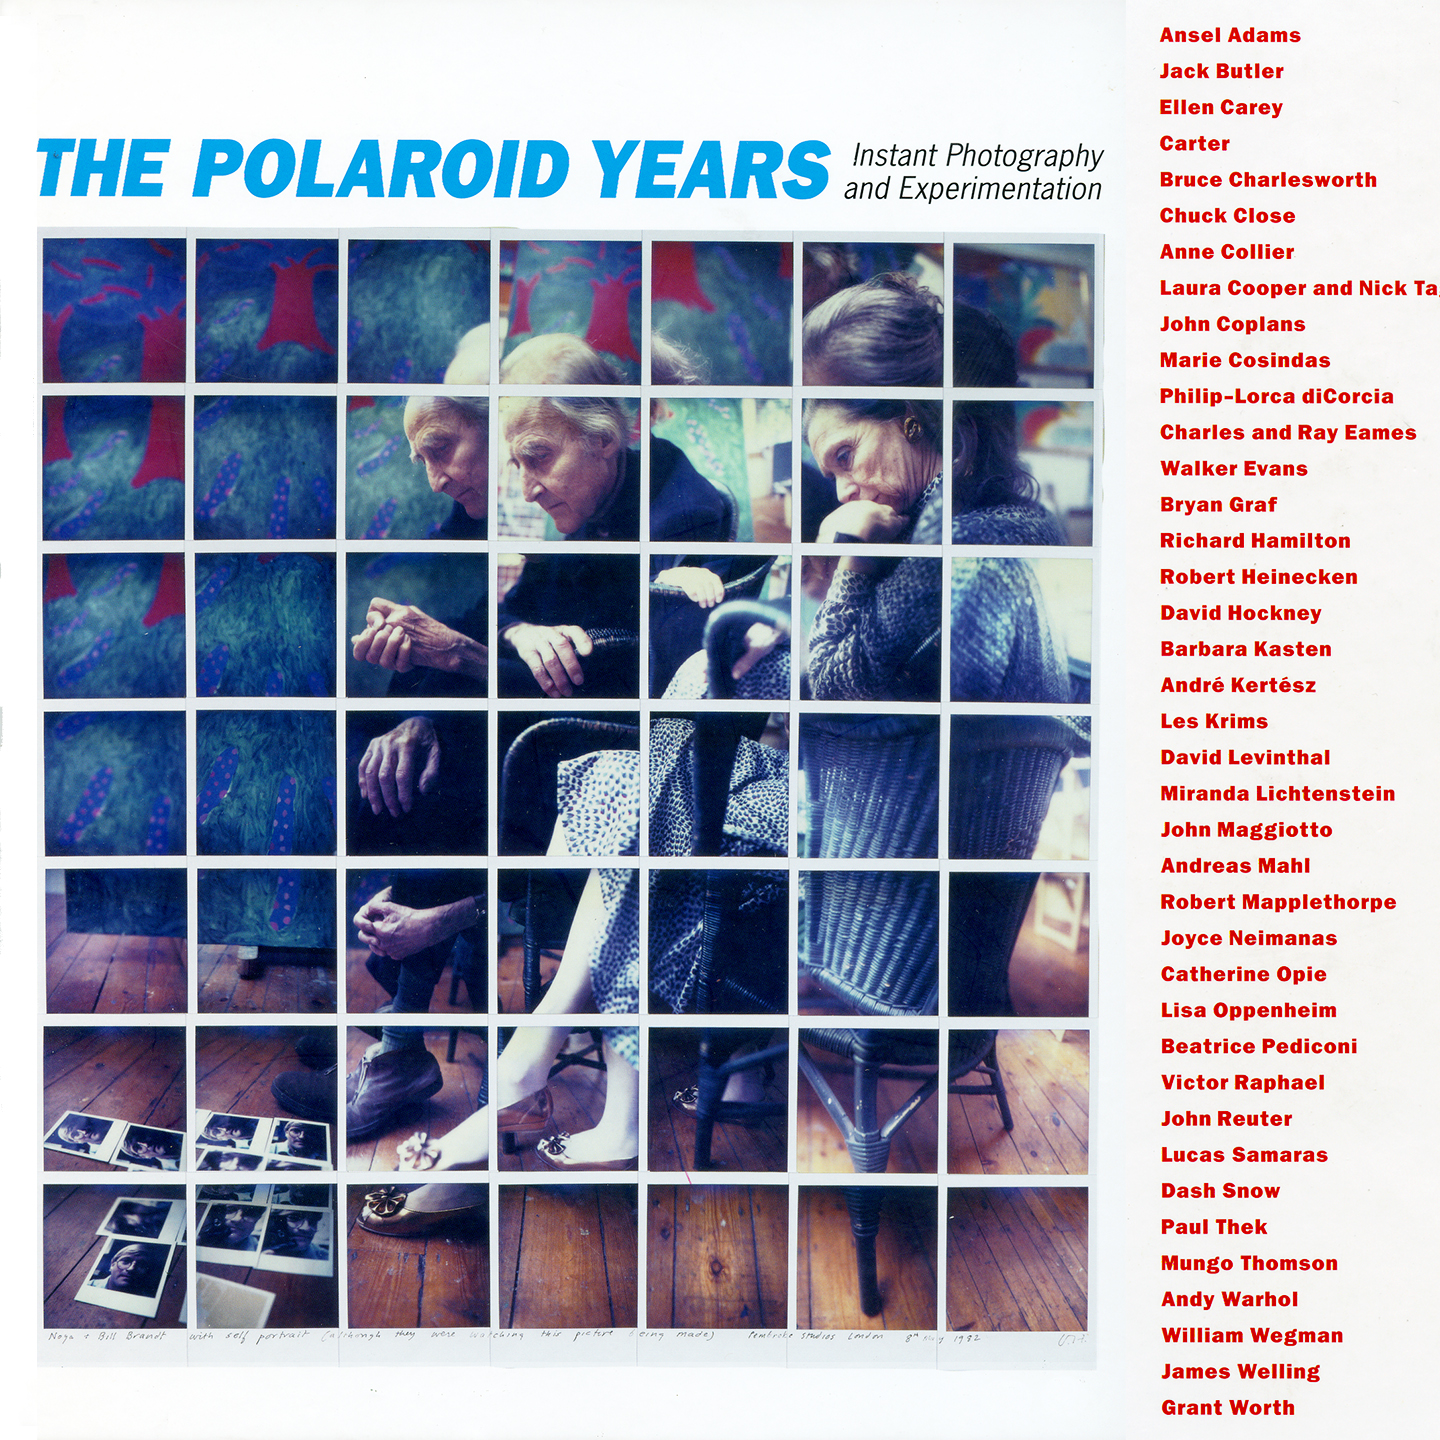 The Polaroid Years Instant Photography and Experimentation 2013